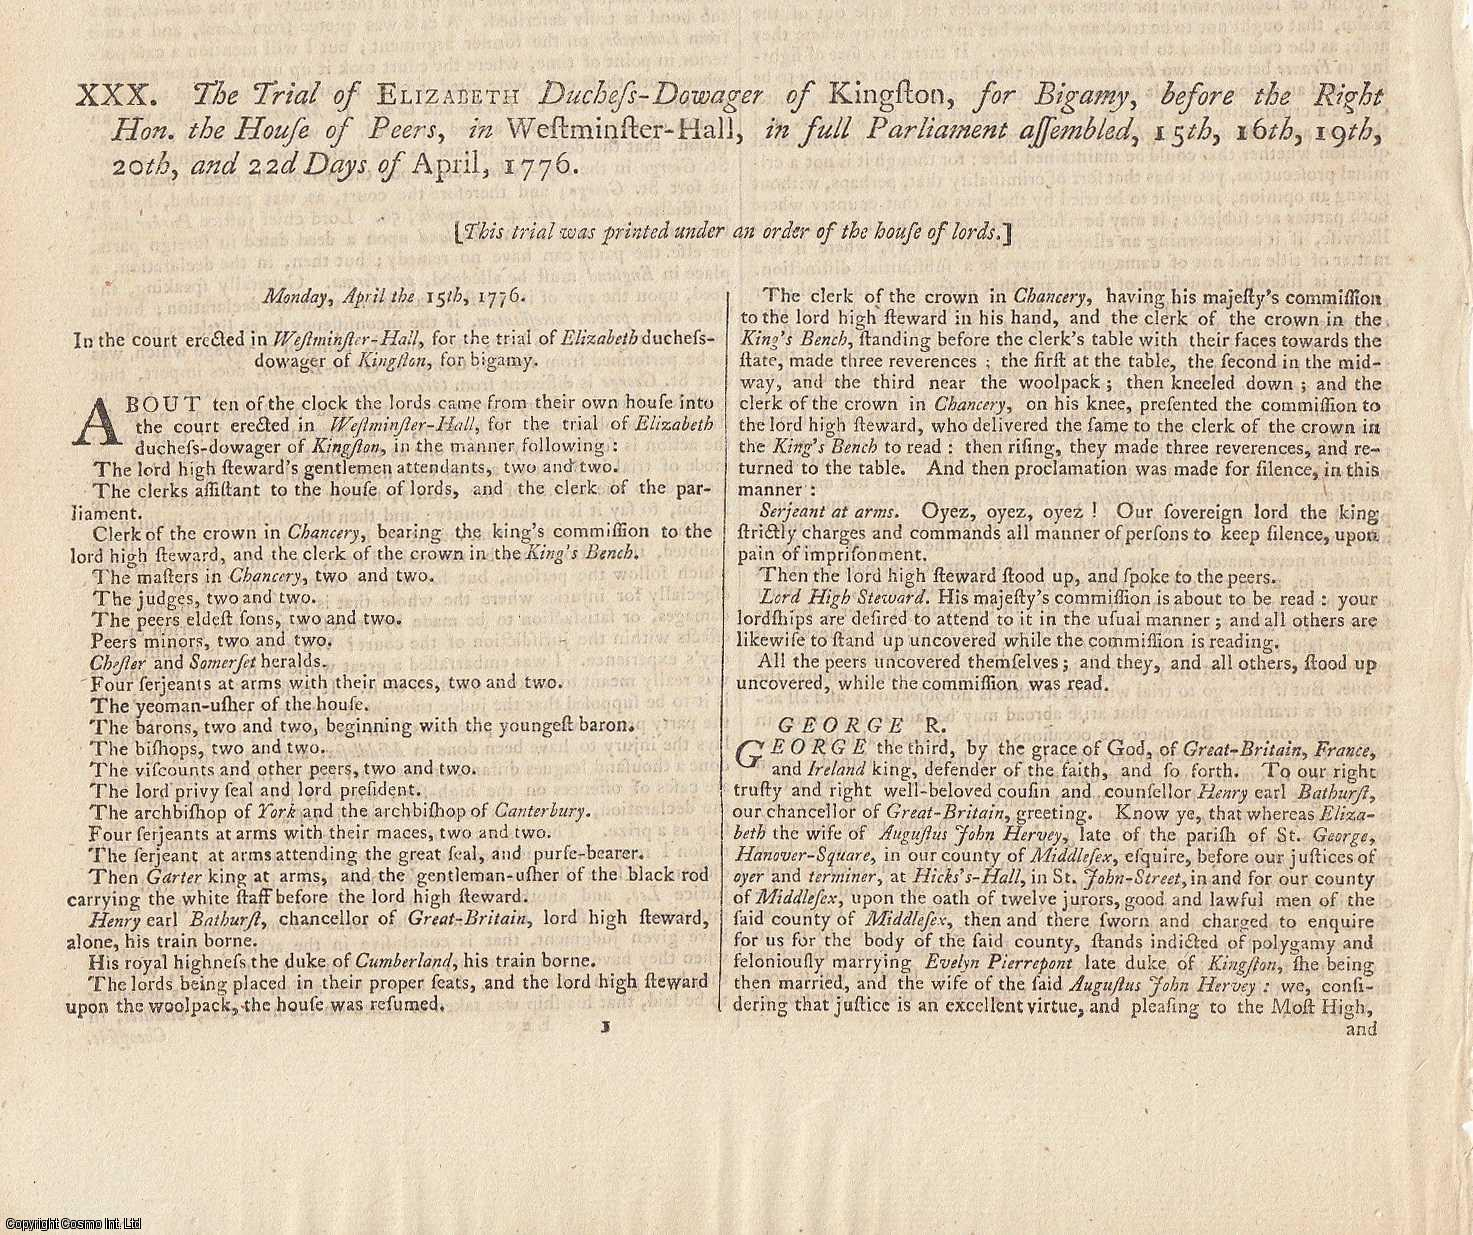 BIGAMY.  The Trial of Elizabeth Duchess Dowager of Kingston, for Bigamy, before the Right Hon. The House of Peers, in Westminster Hall, in full Parliament assembled, 15th, 16th, 19th, 20th, and 22nd Days of April, 1776., [Trial].